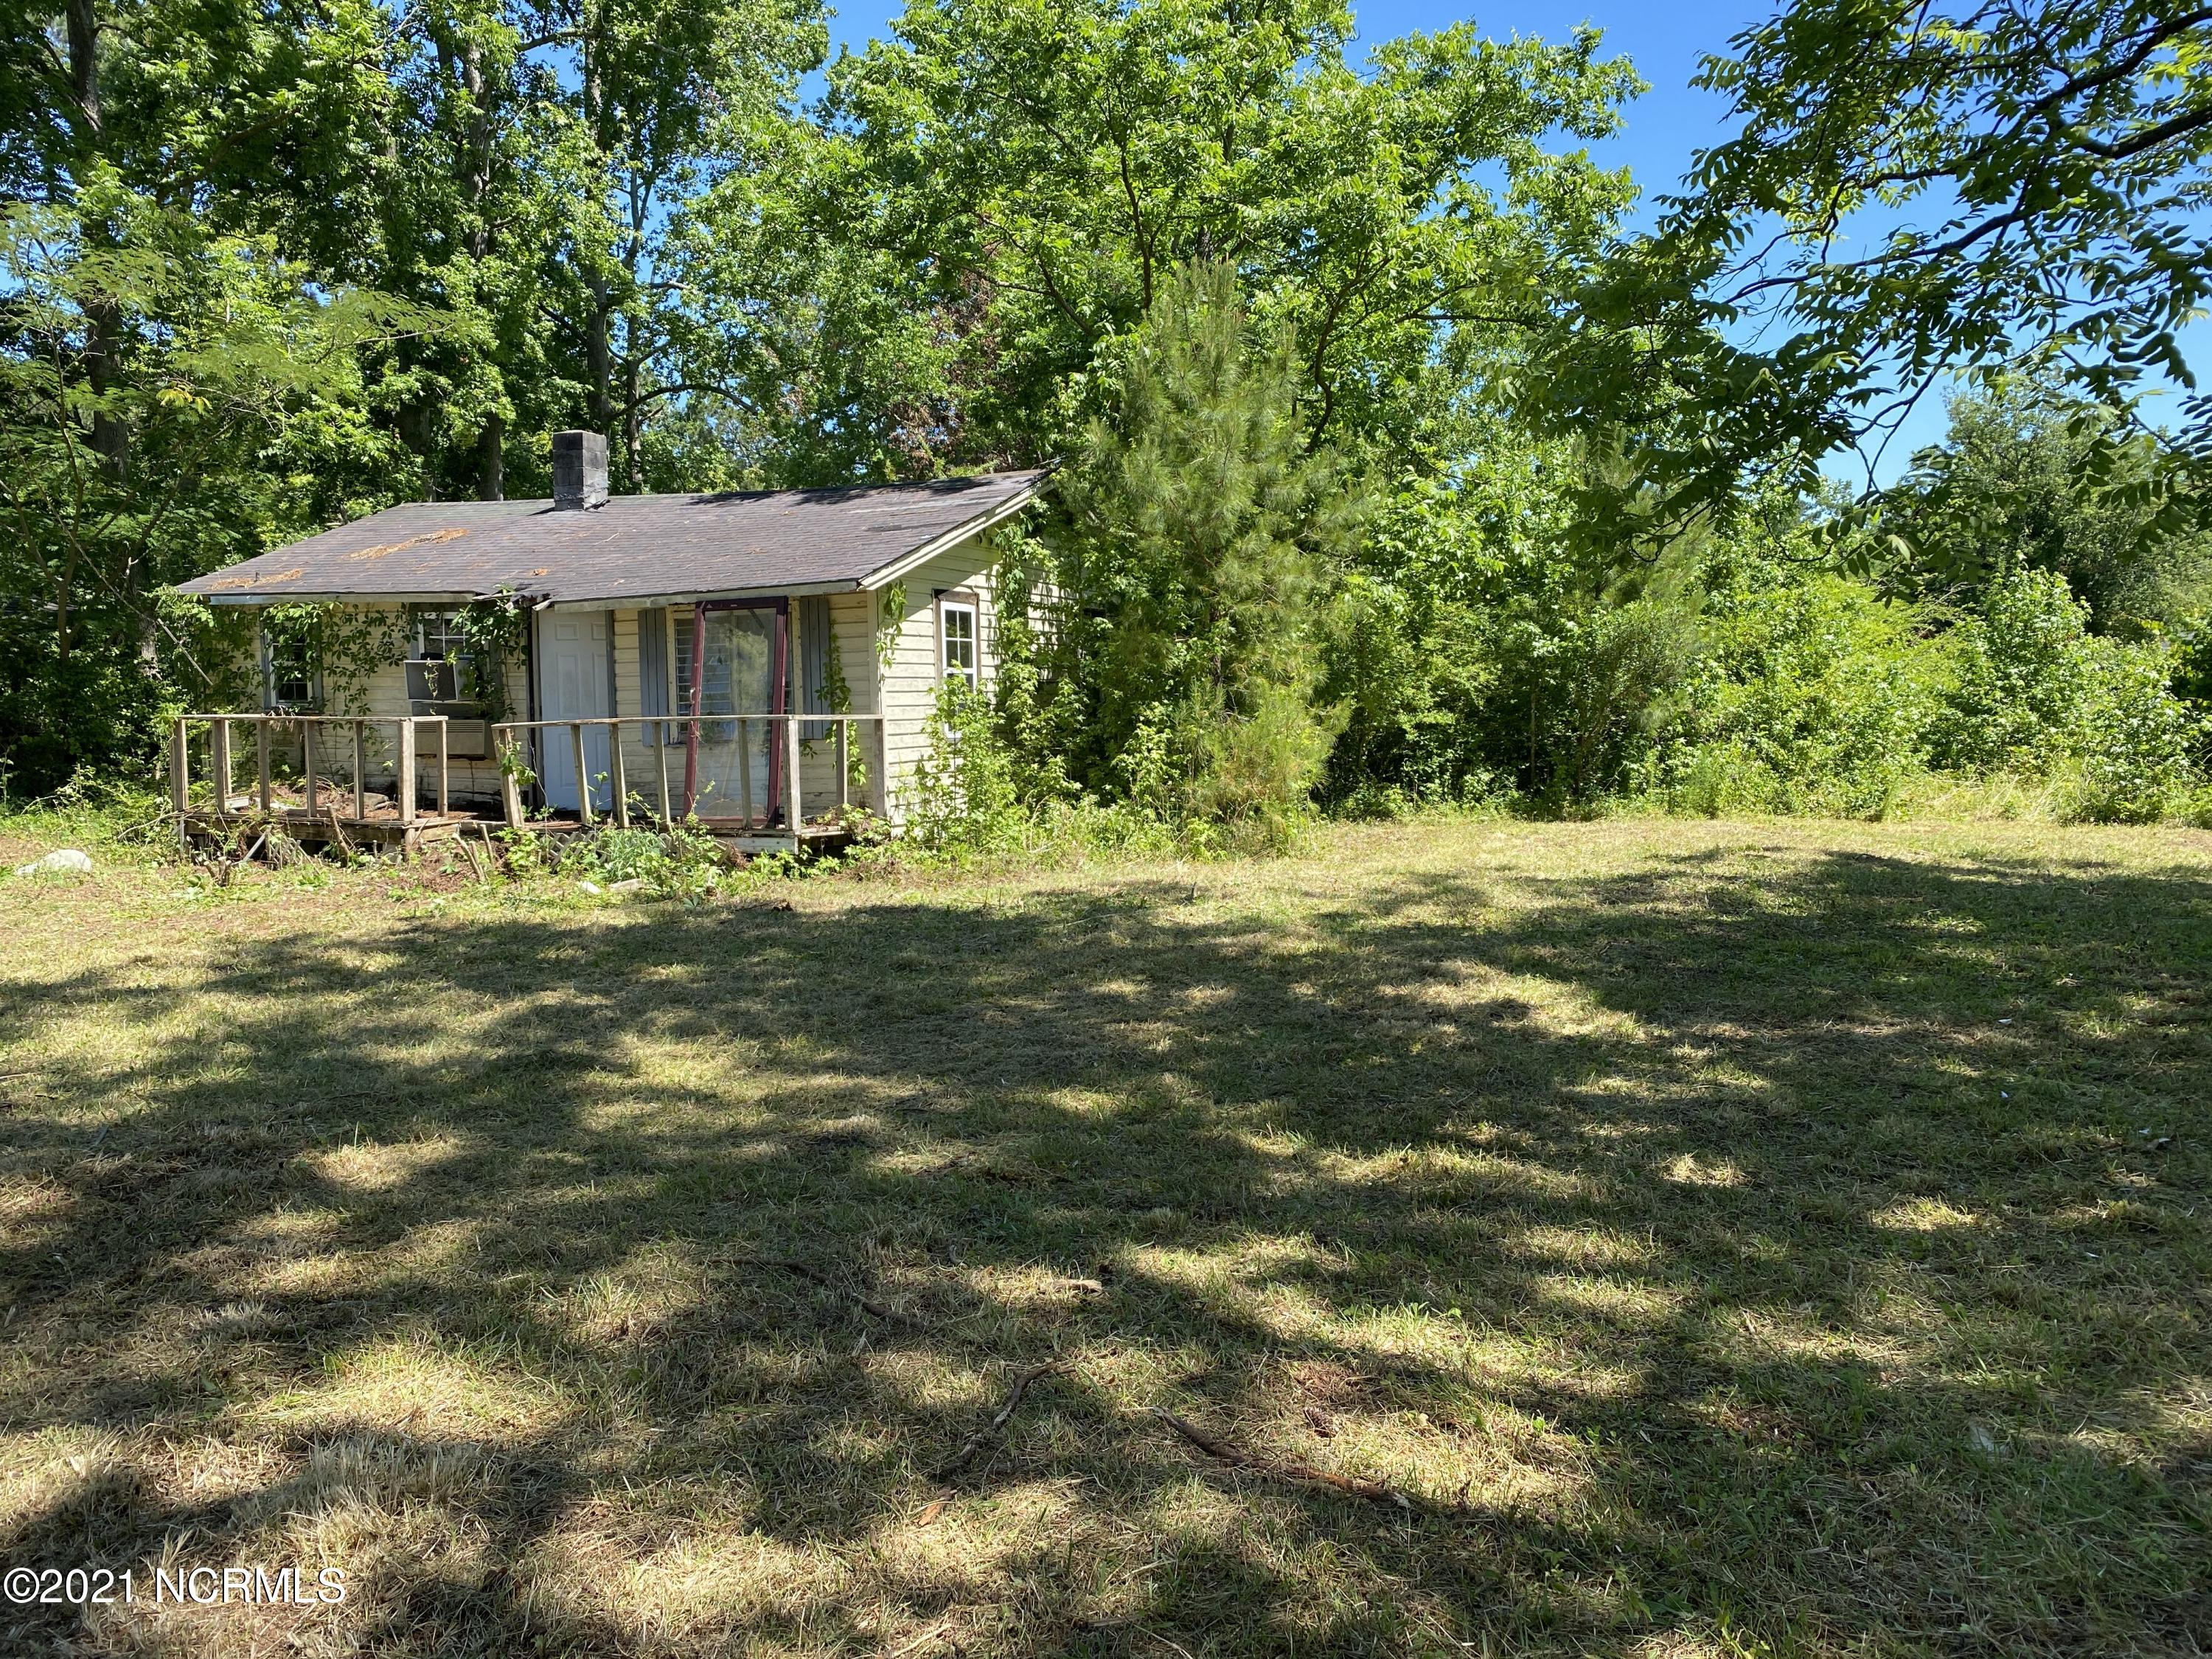 A perfect lot to build a  home or place your manufactured home.  There is an old septic permit on file from 1988.  The lot has an old dilapidated home on it. Come check it out